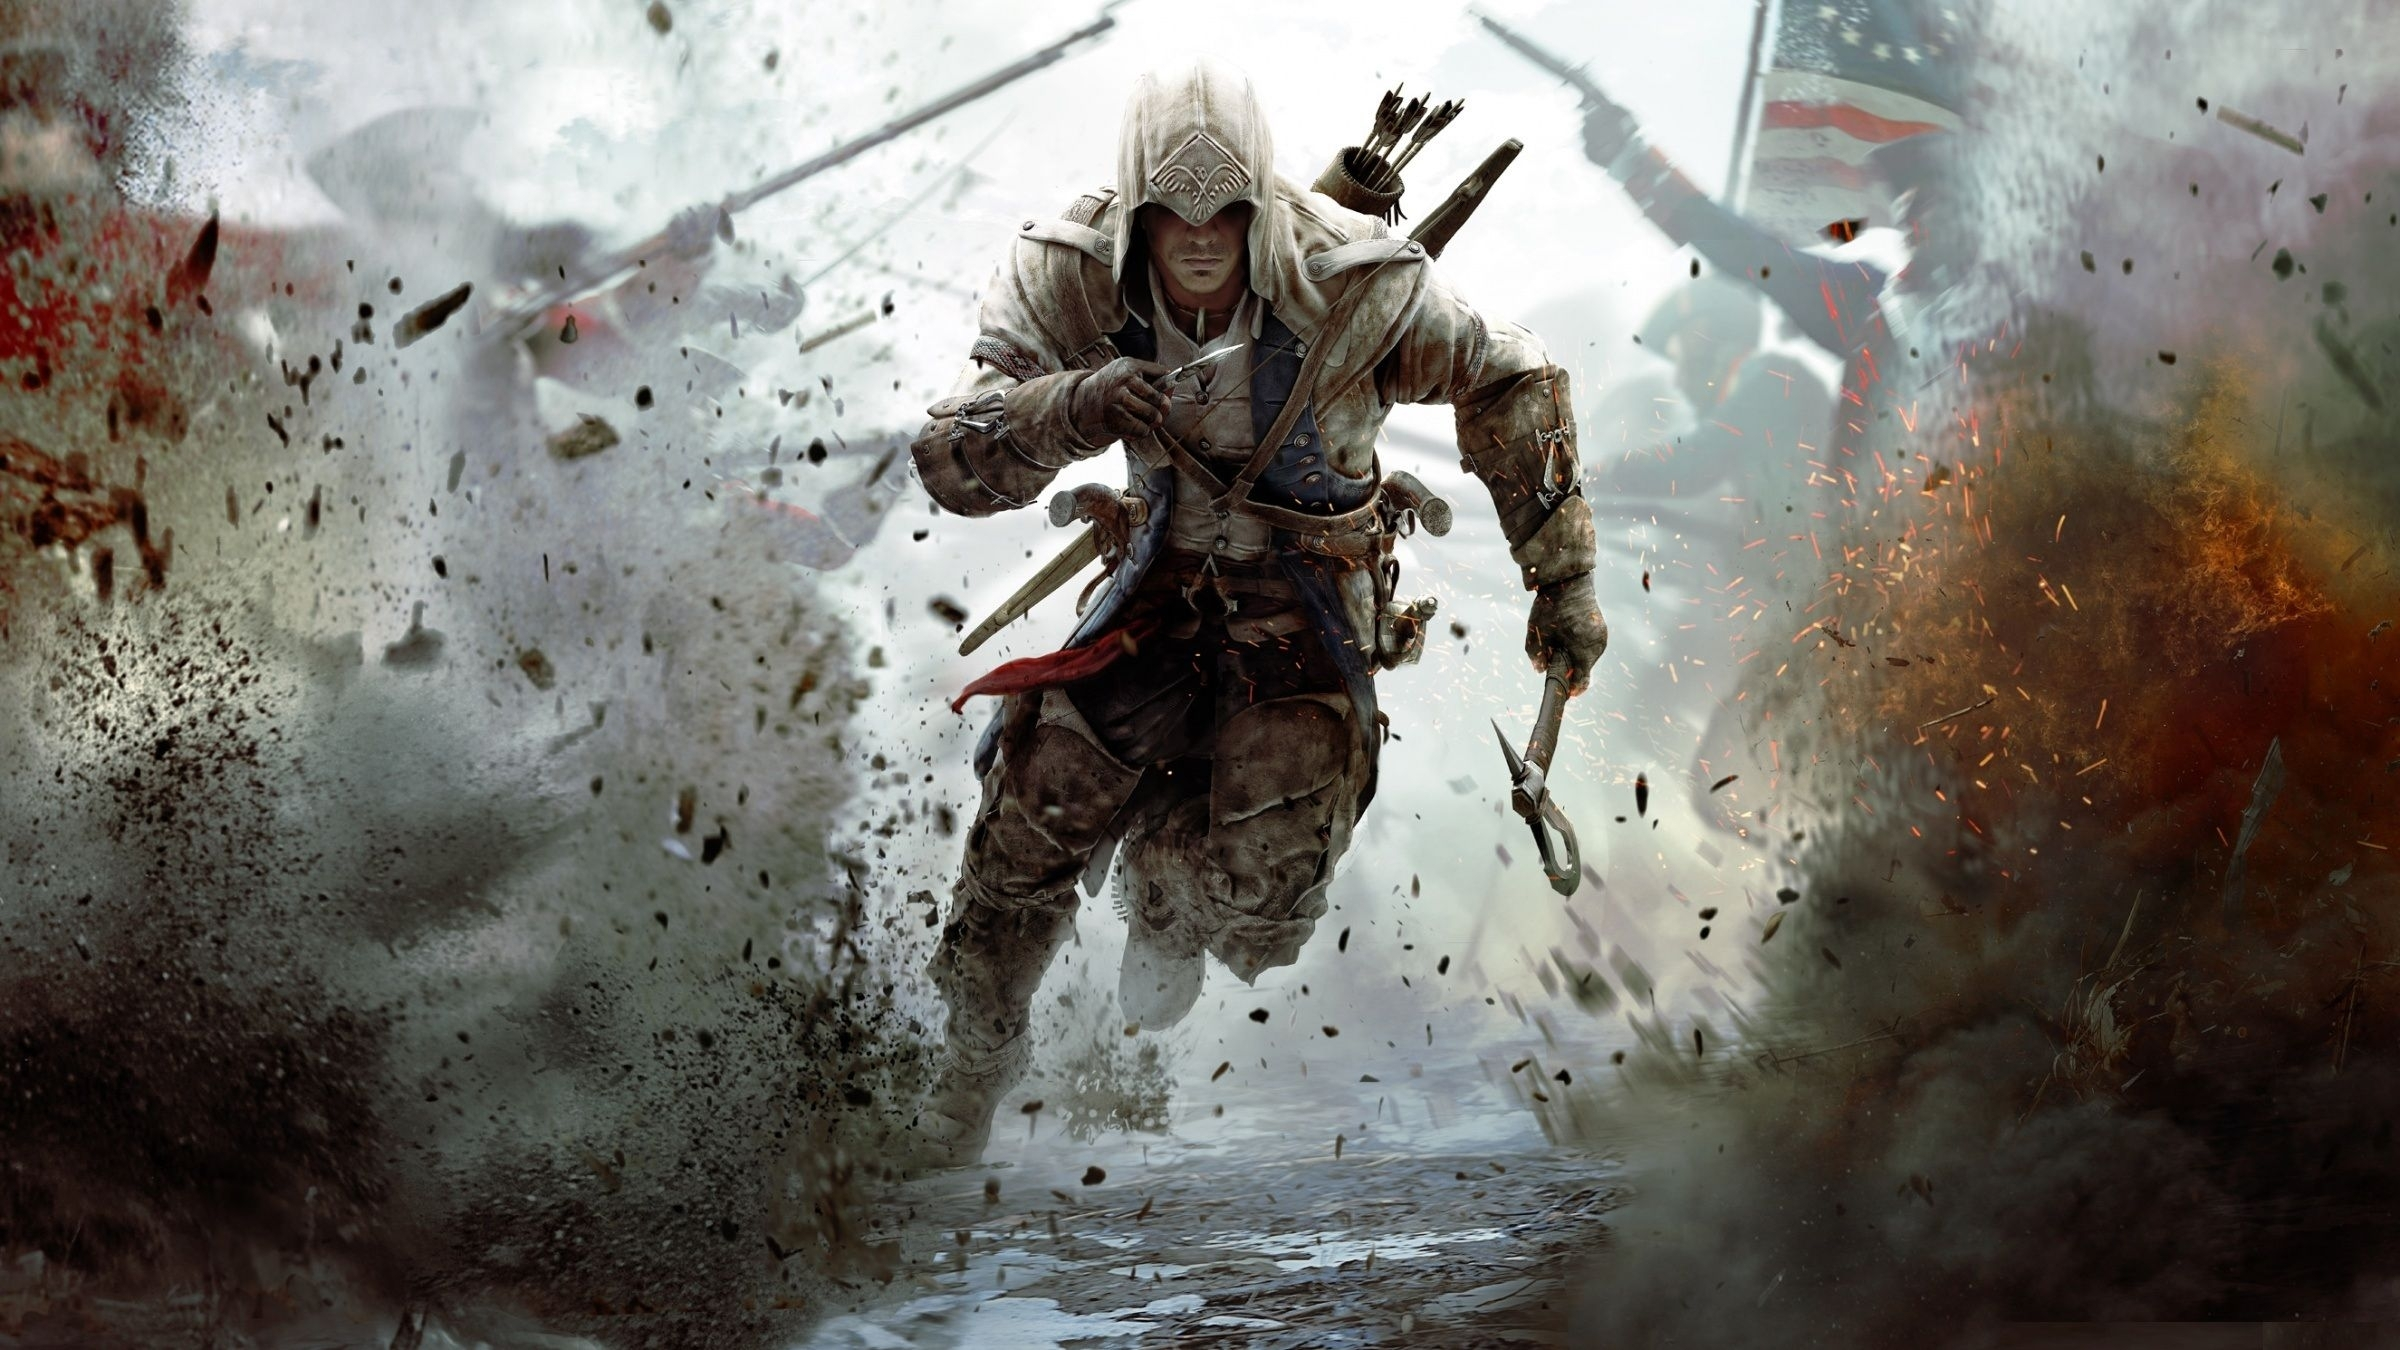 hd wallpapers widescreen 1080p 3d |  creed 3-game hd widescreen